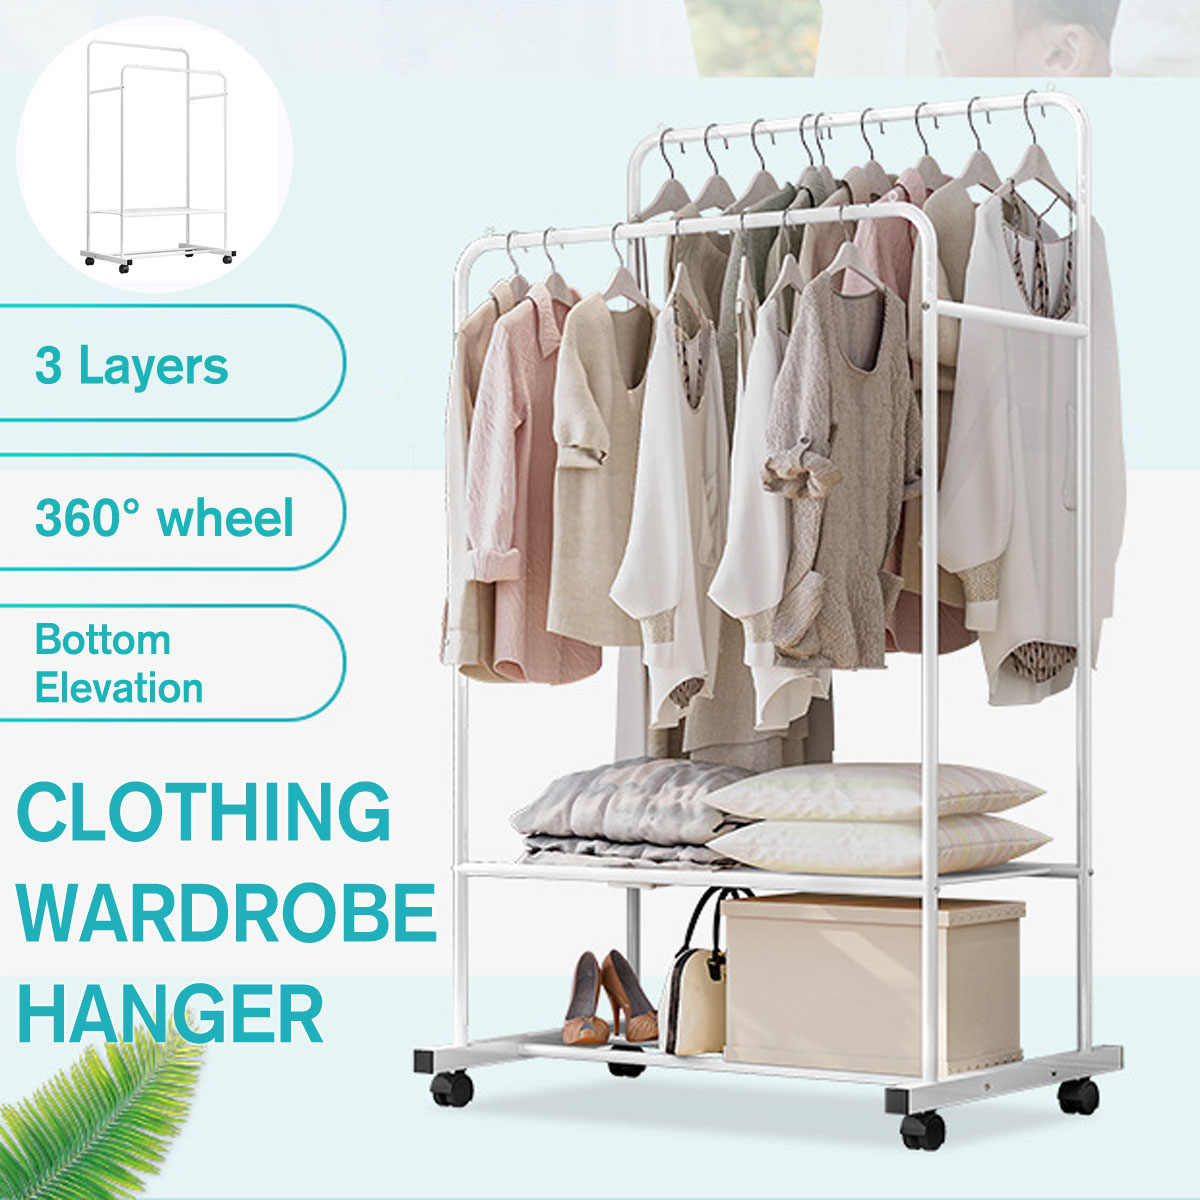 Clothes Hanger Metal Clothing Drying Racks Coat Rack Scarf Hat Wardrobe Portable